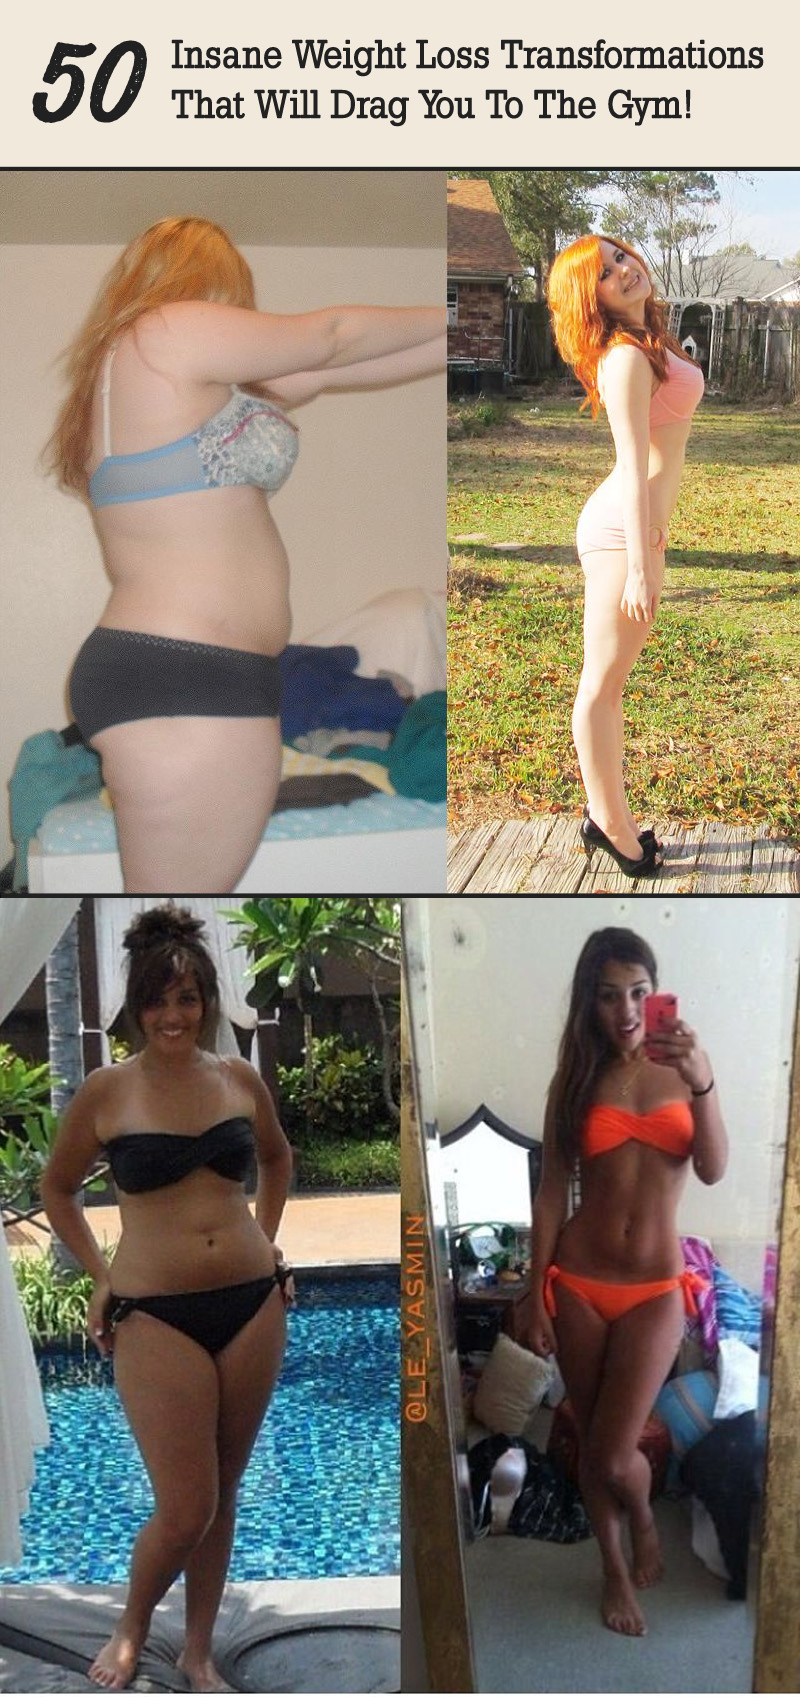 50 Insane Weight Loss Transformations That Will Drag You To The Gym!